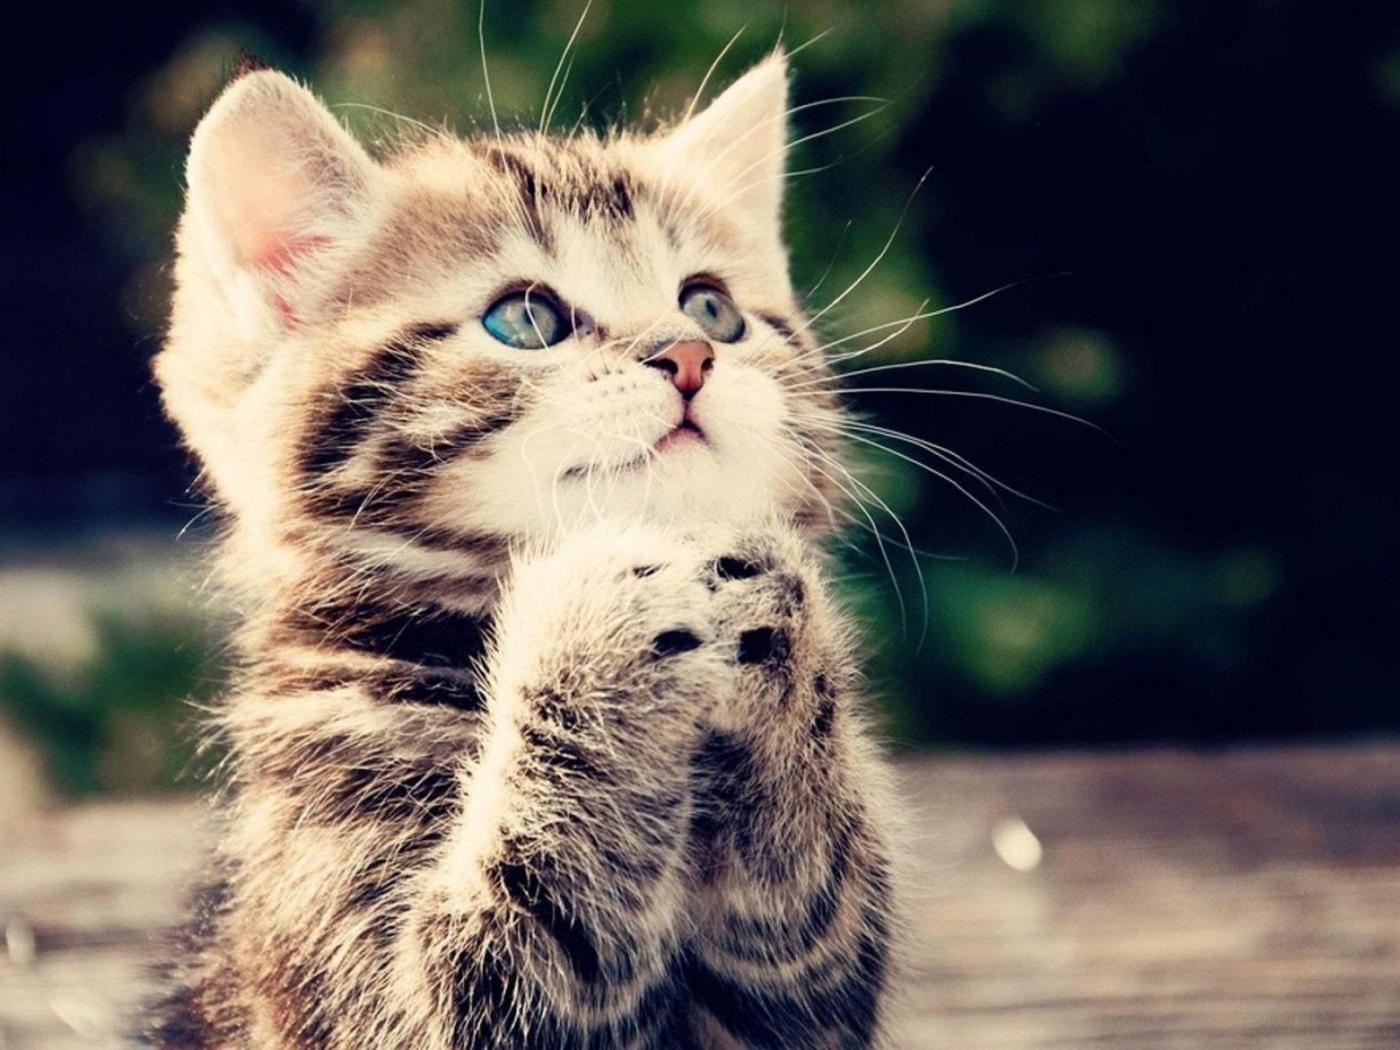 Find & download free graphic resources for baby animals. Funny Animal Wallpapers Free Download with Praying Kitten ...